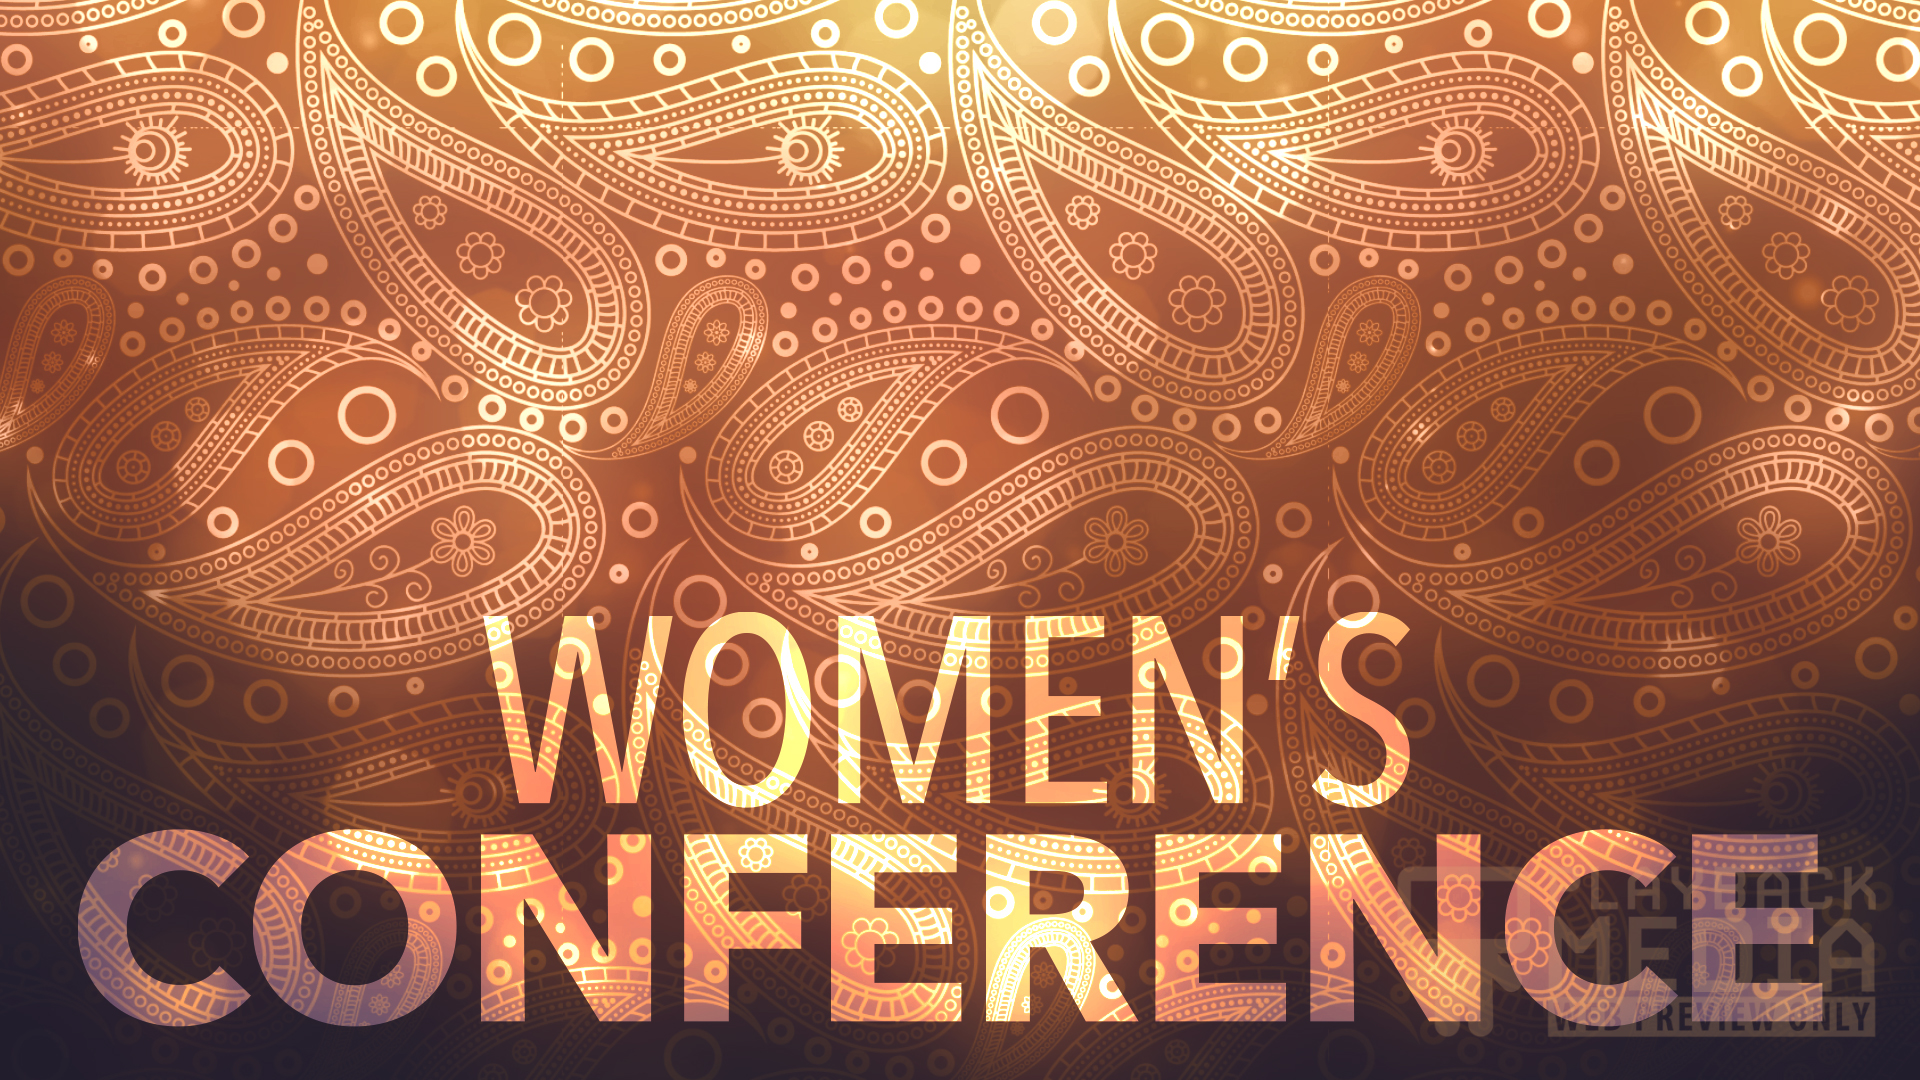 paisley womens conference motion background